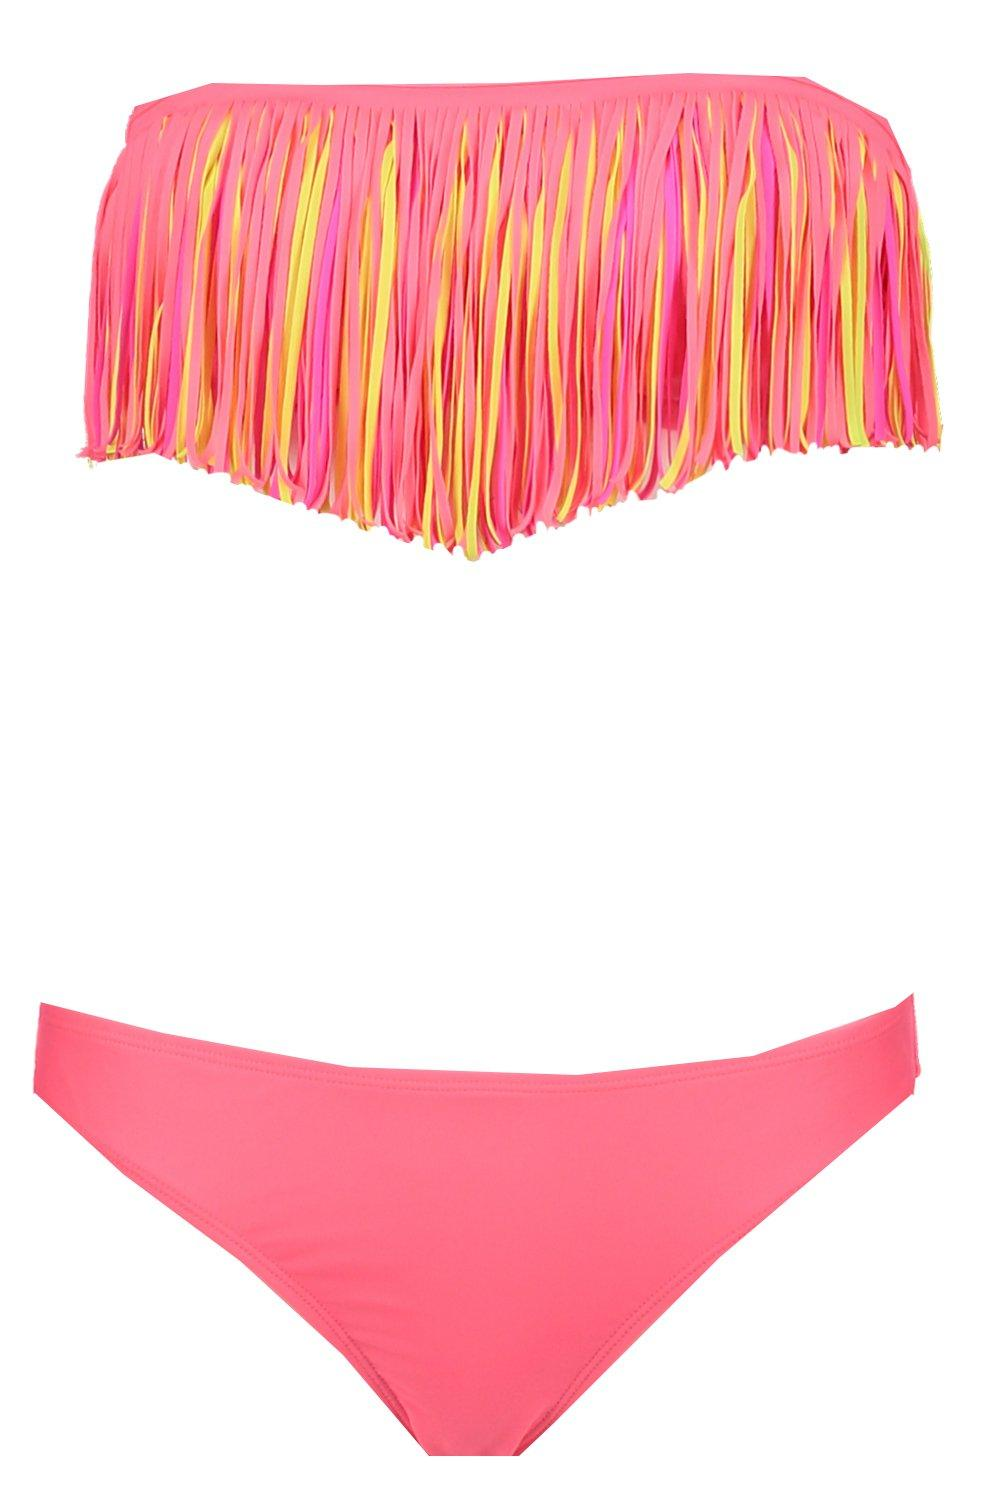 boohoo womens murcia neon fringe bandeau bikini in neon pink size 6 ebay. Black Bedroom Furniture Sets. Home Design Ideas